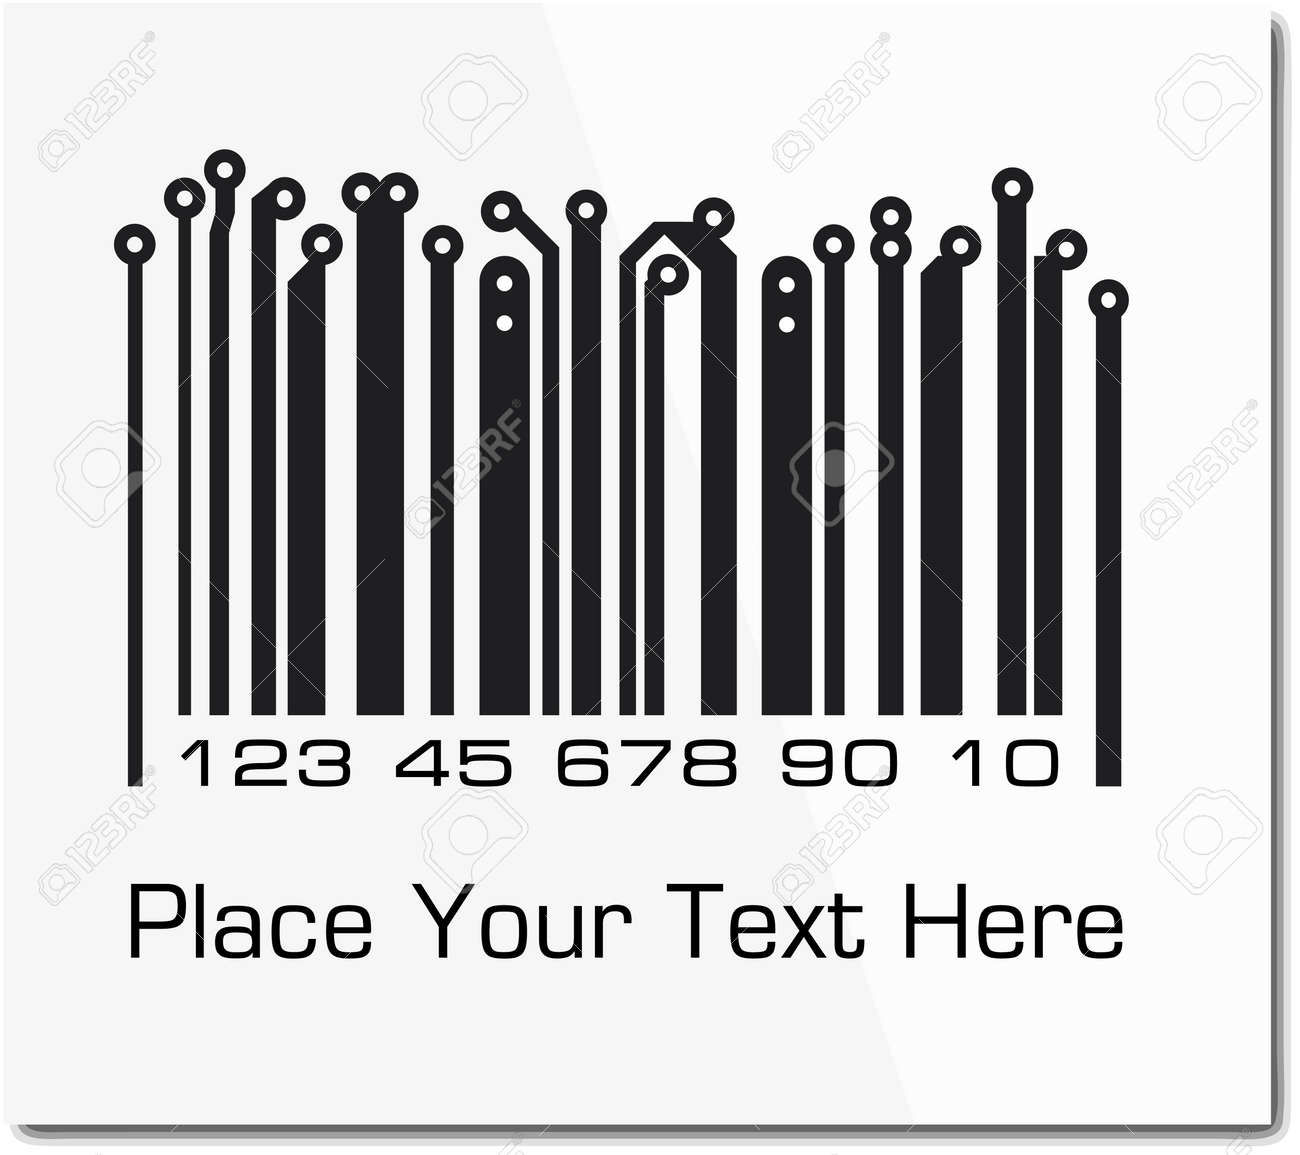 Bar code in PCB-layout style